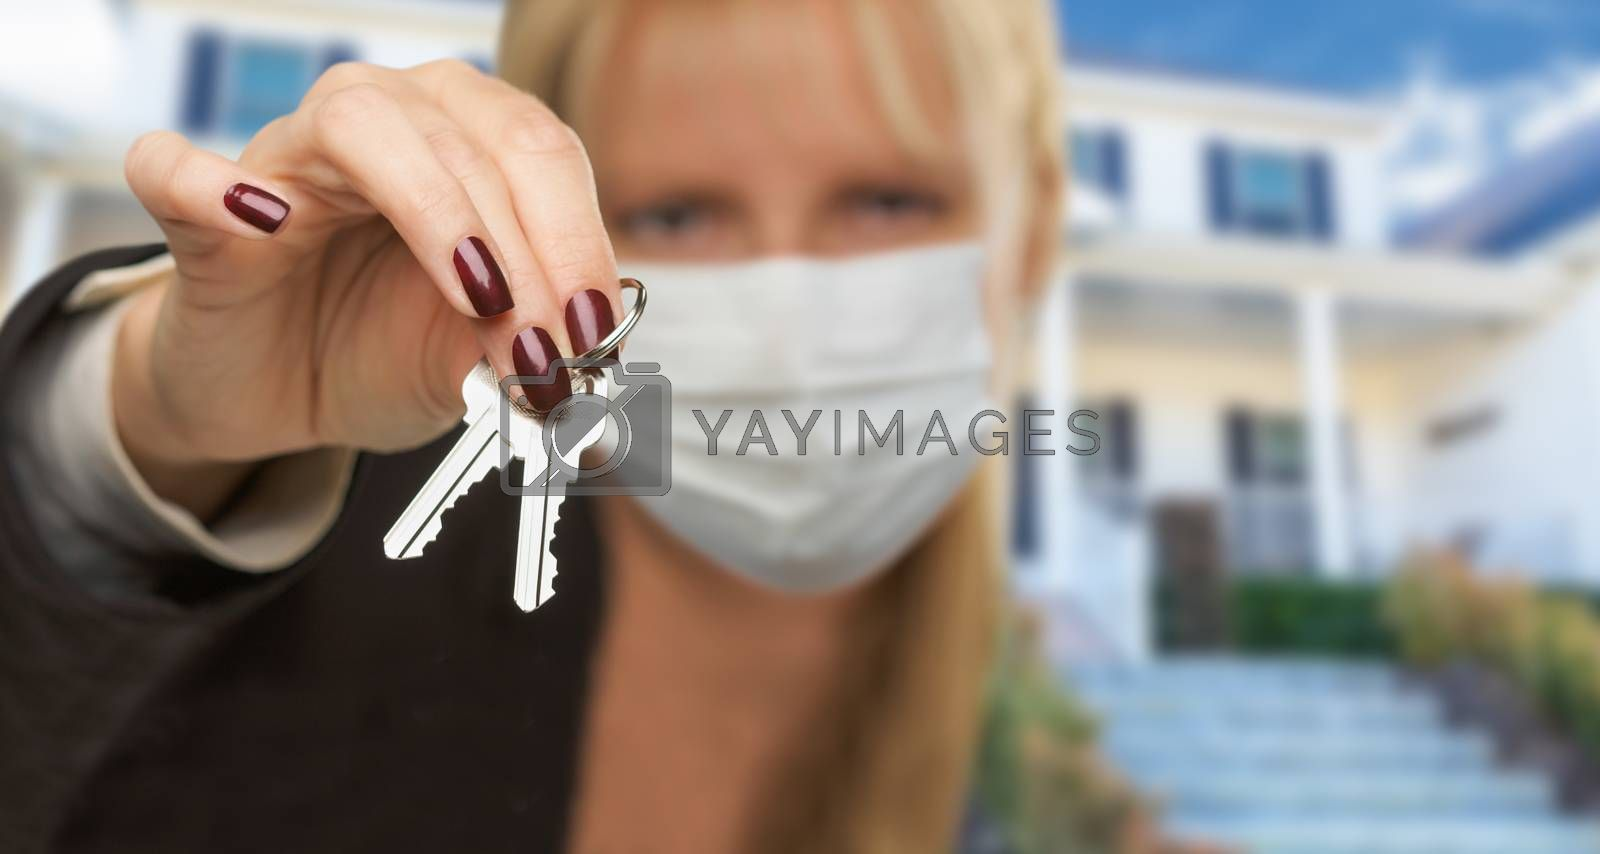 Woman Presenting House Keys Wearing Medical Face Mask by Feverpitched